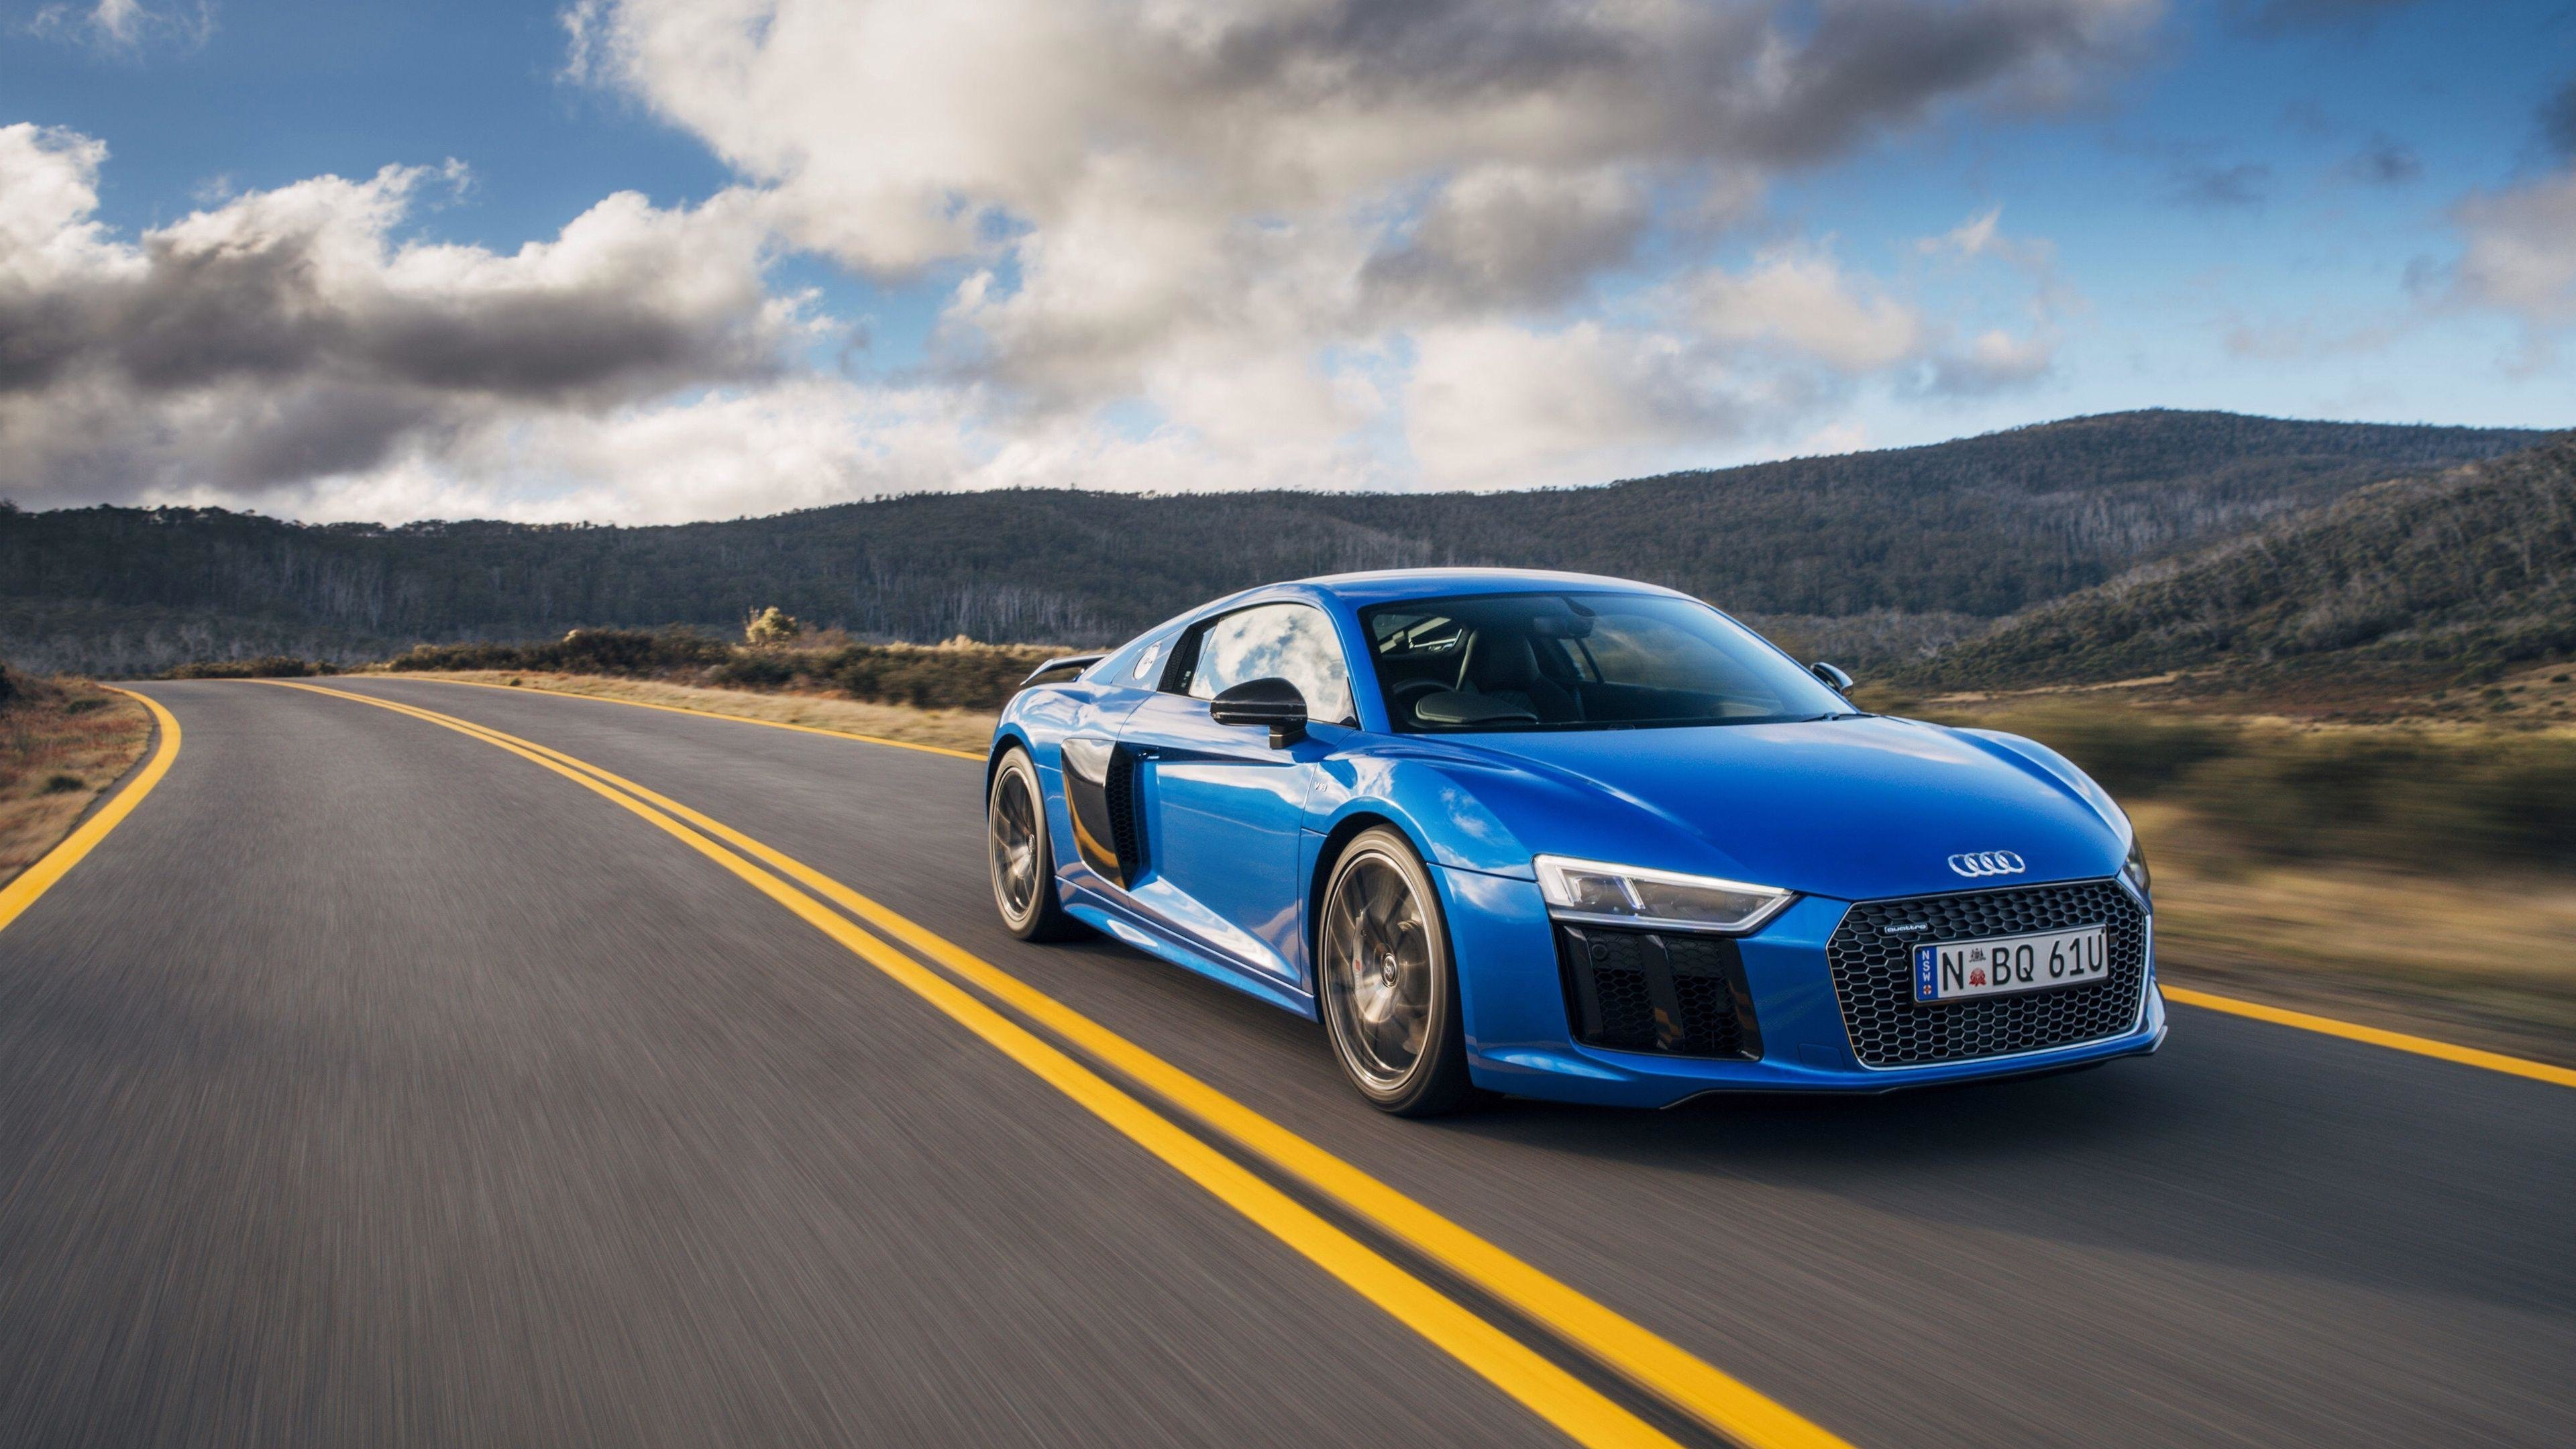 Latest Audi Cars Wallpapers Wallpaper Cave Free Download